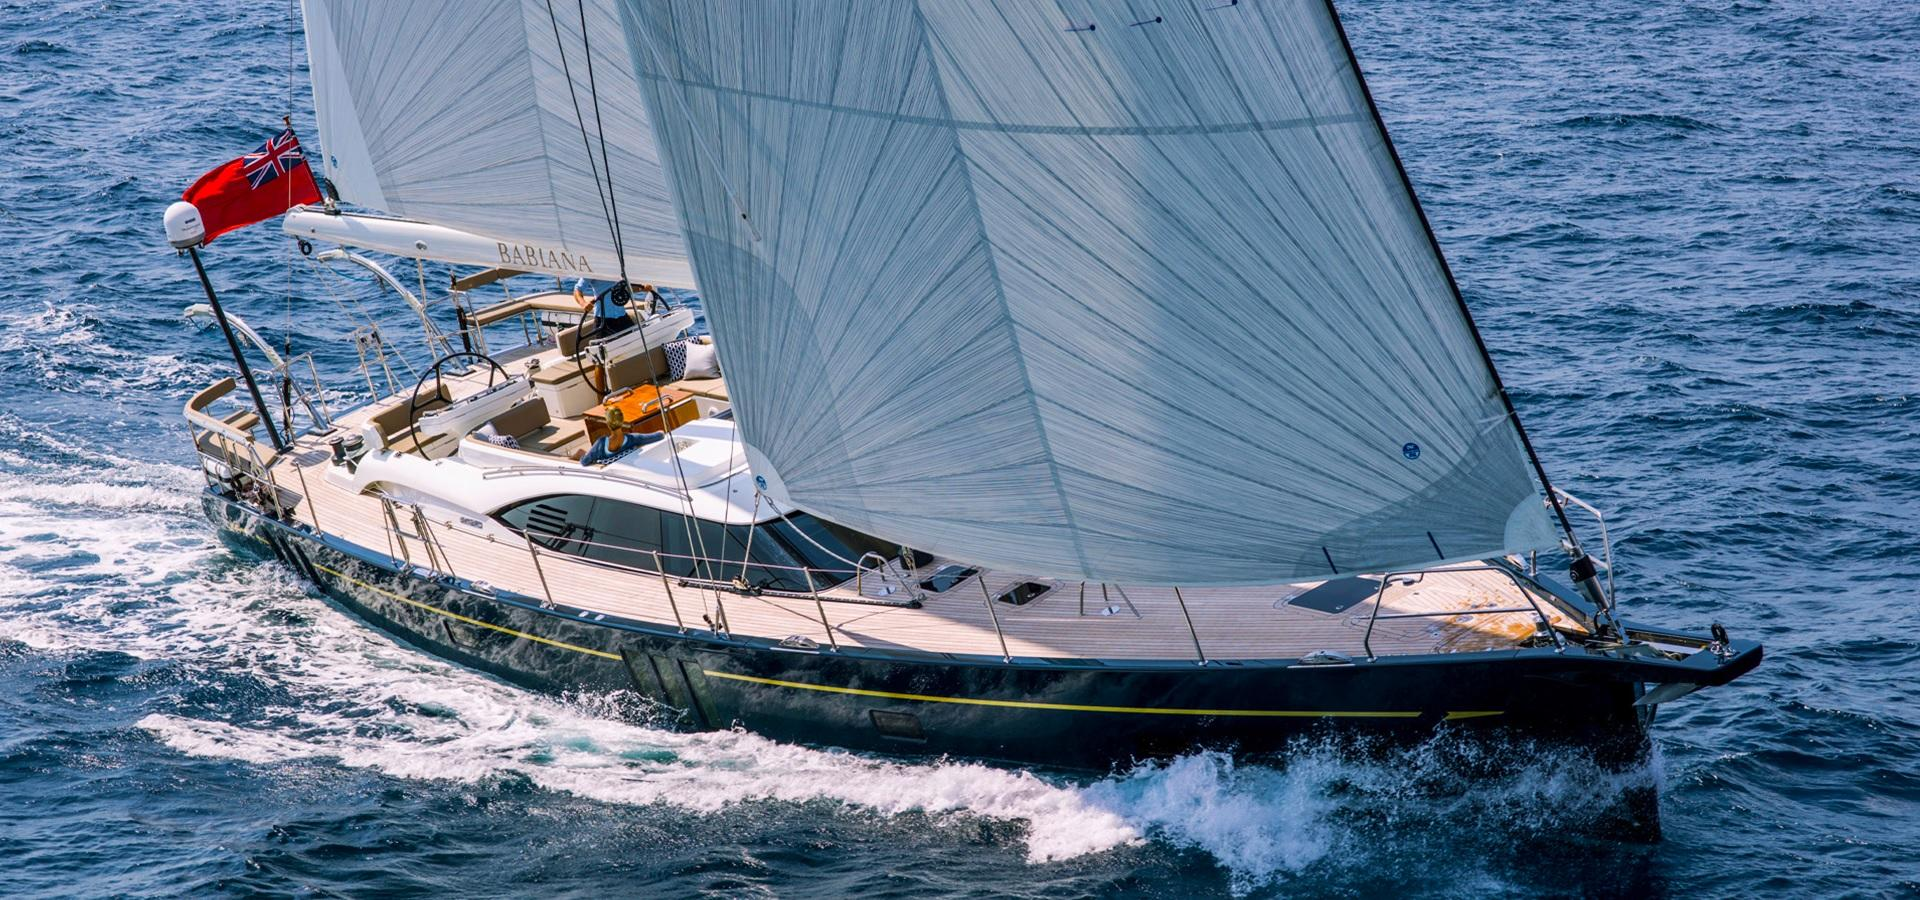 Oyster 675 70 Foot Sailboat Luxury